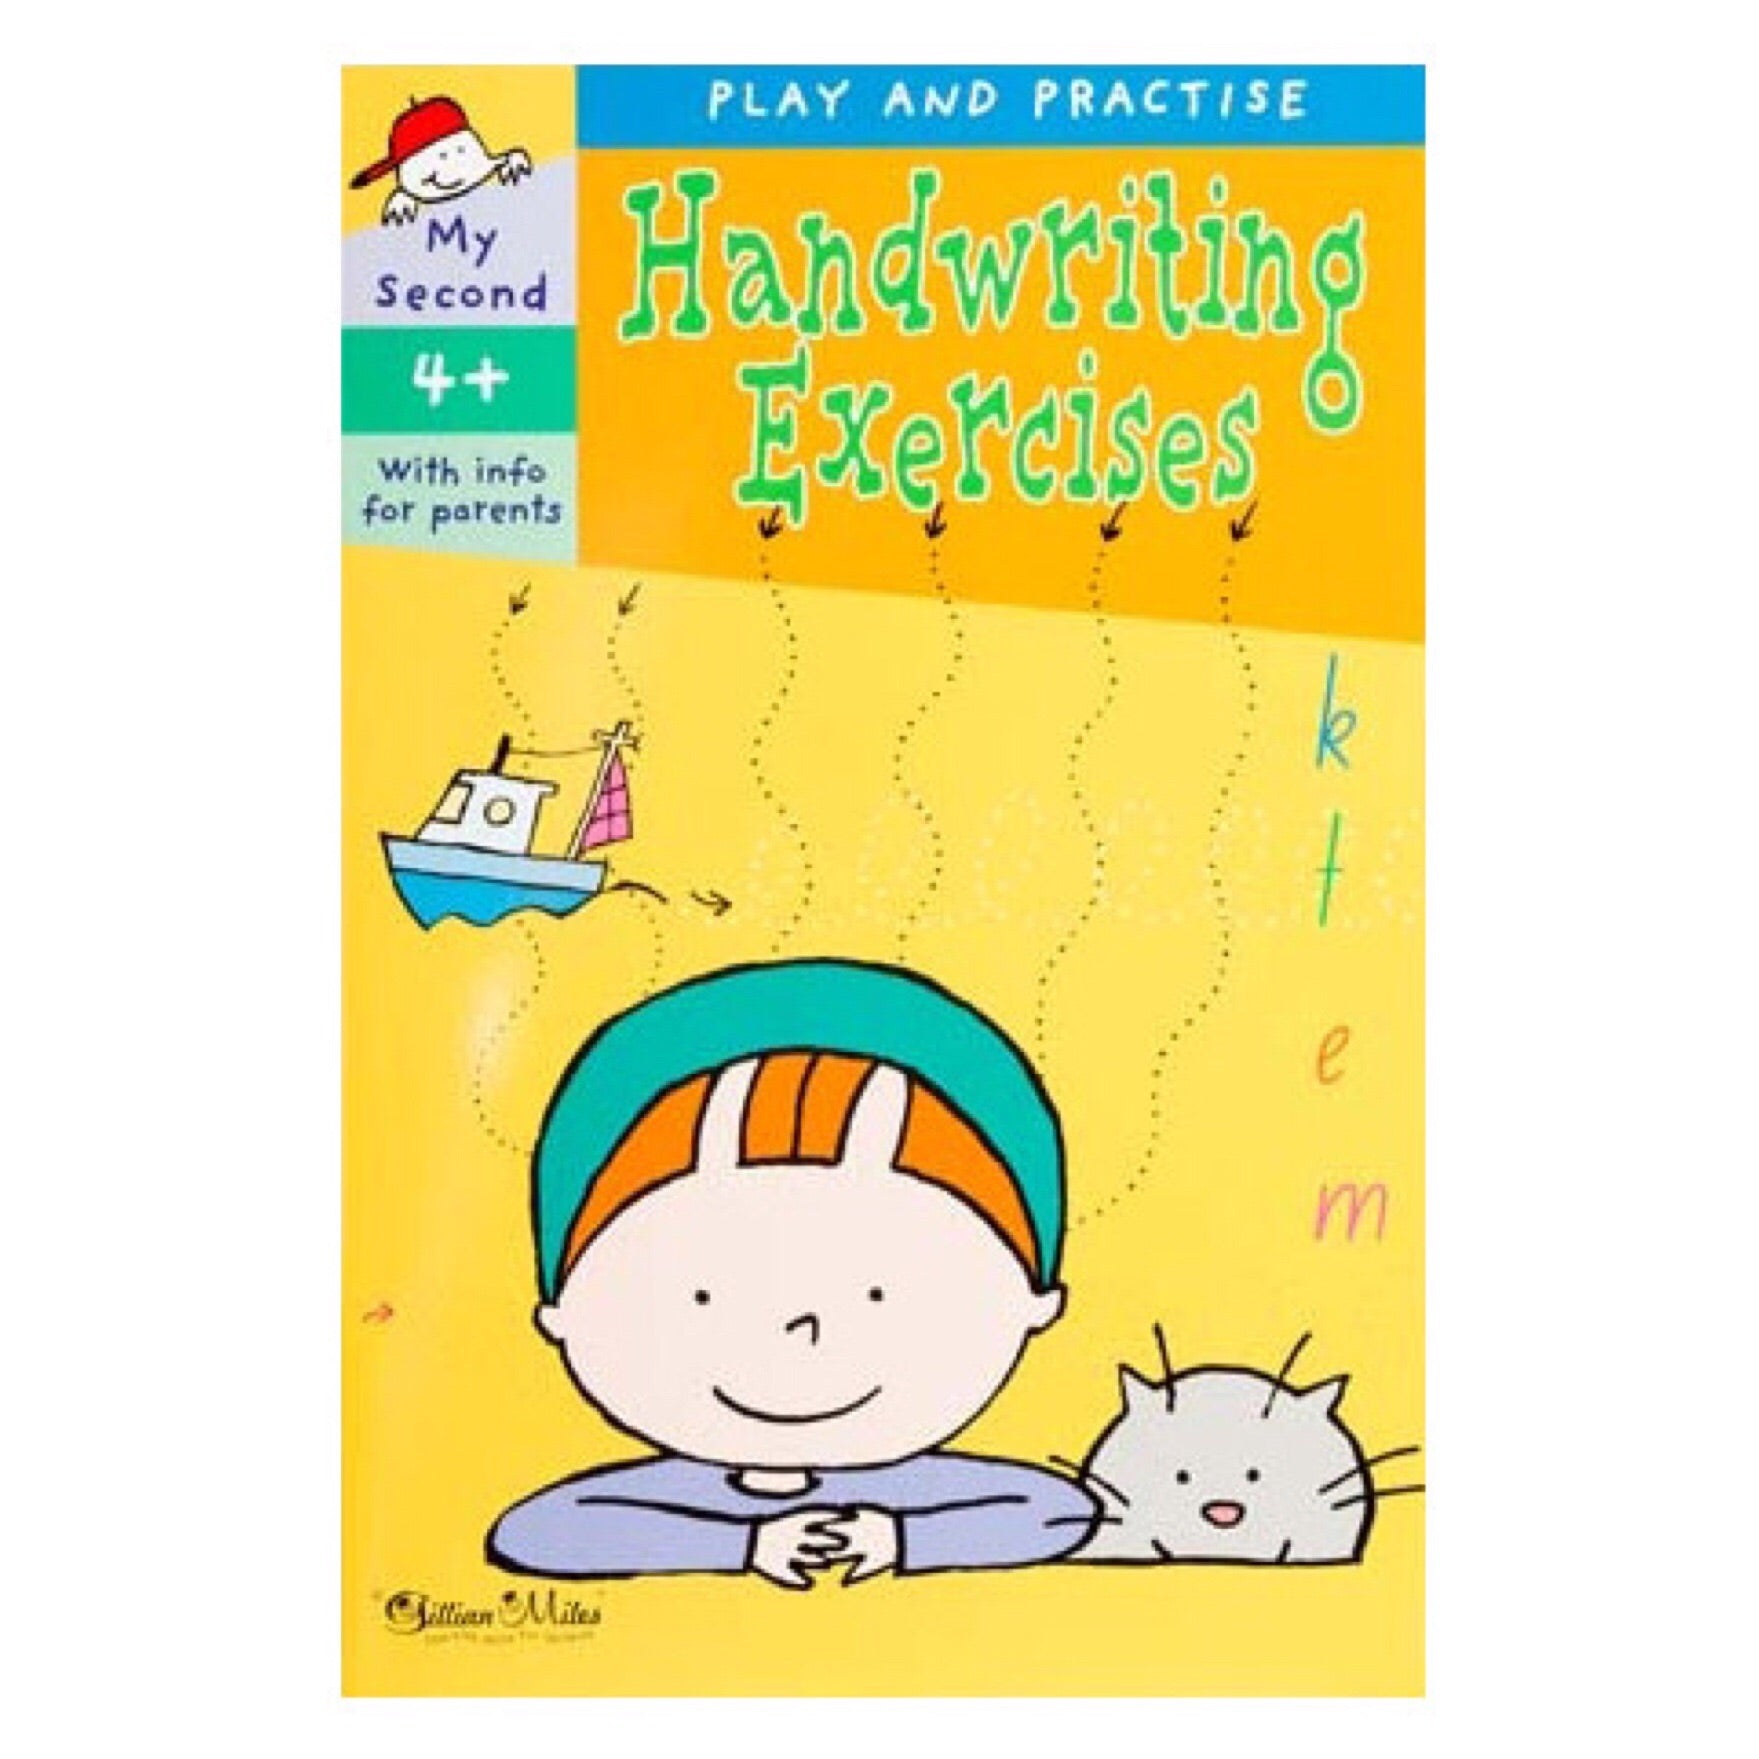 Play and Practice Exercises Book | Handwriting (4 years+) - Lexi & Me